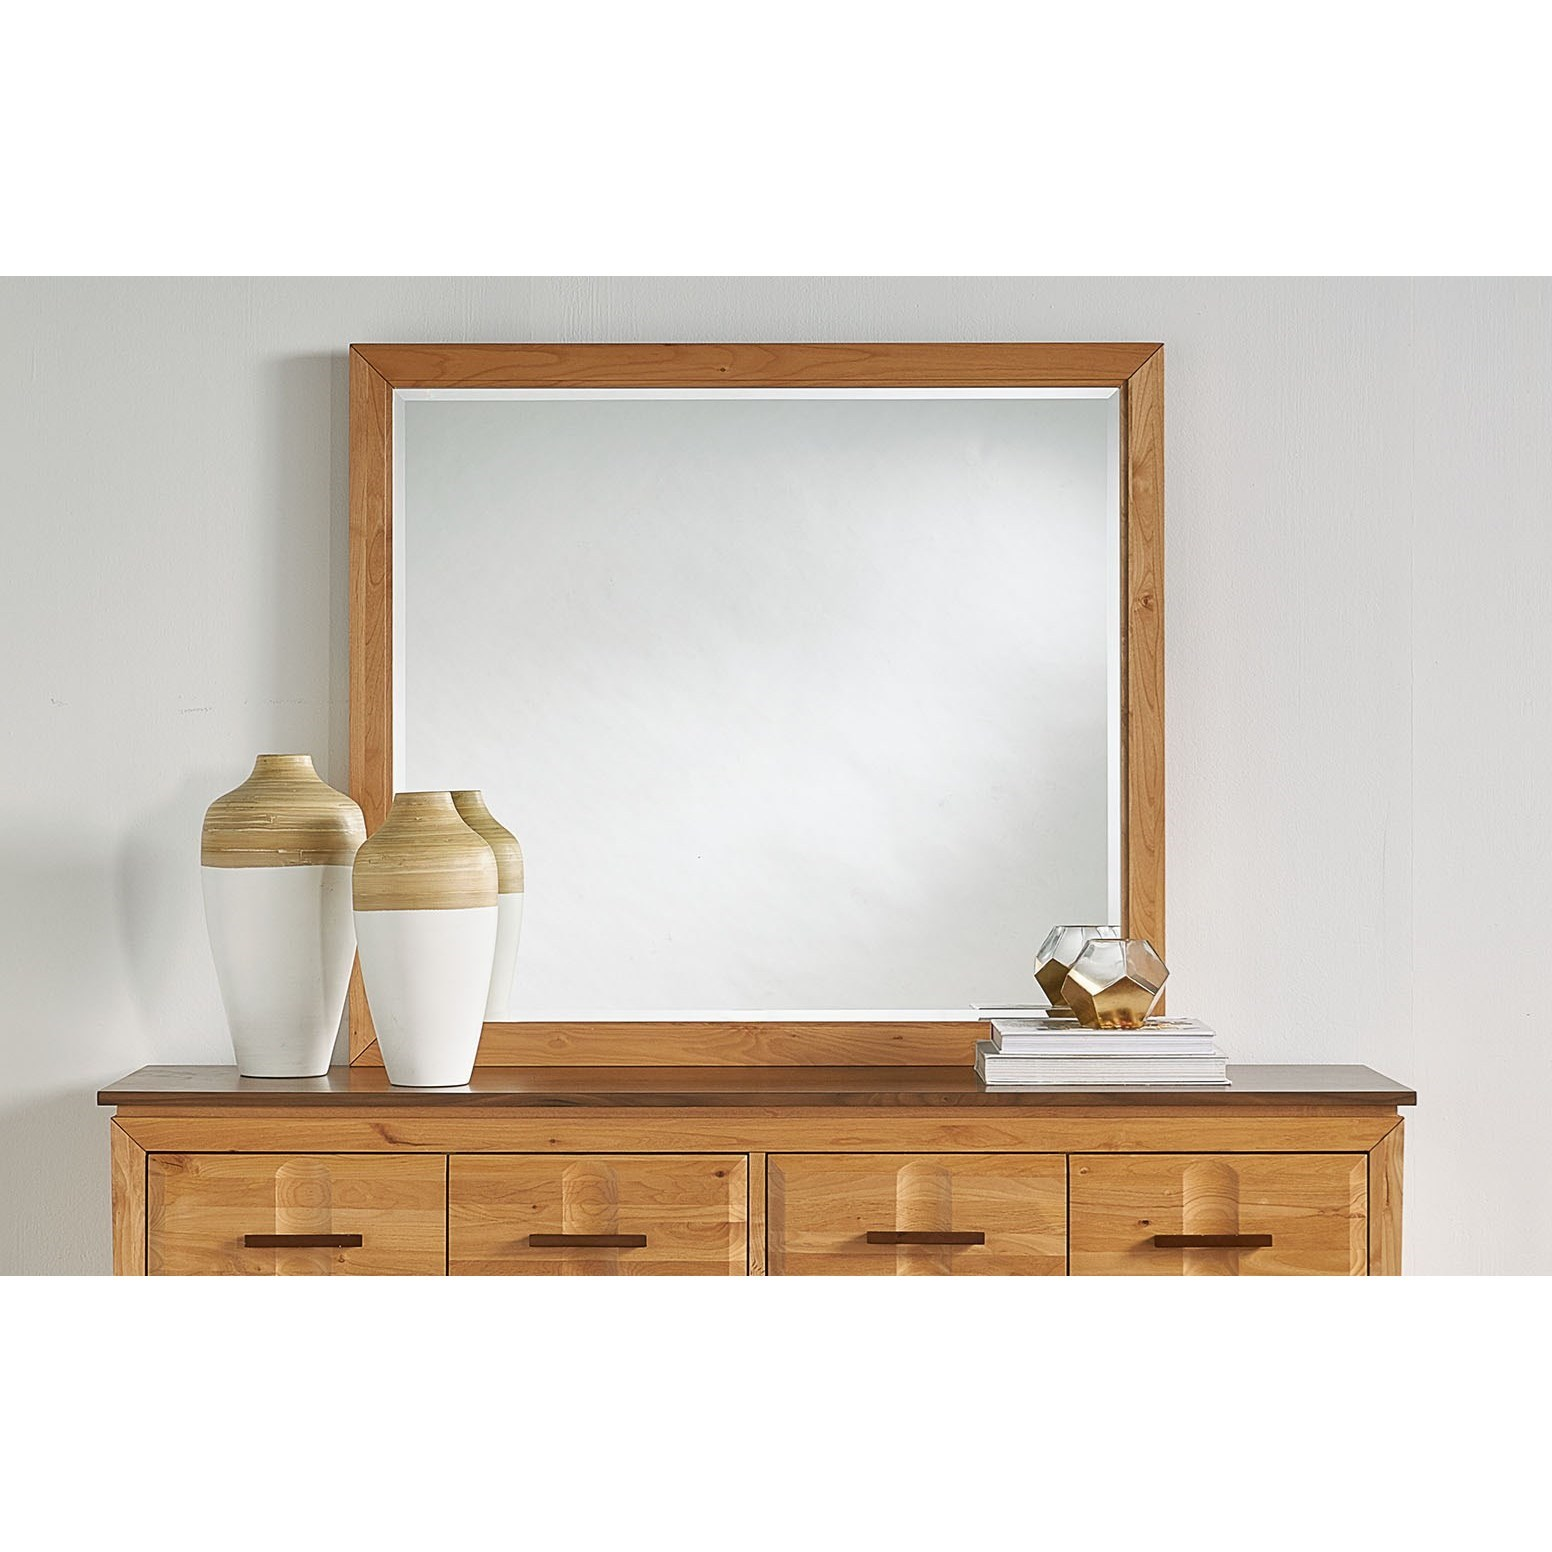 Modway Landscape Mirror  by A-A at Walker's Furniture